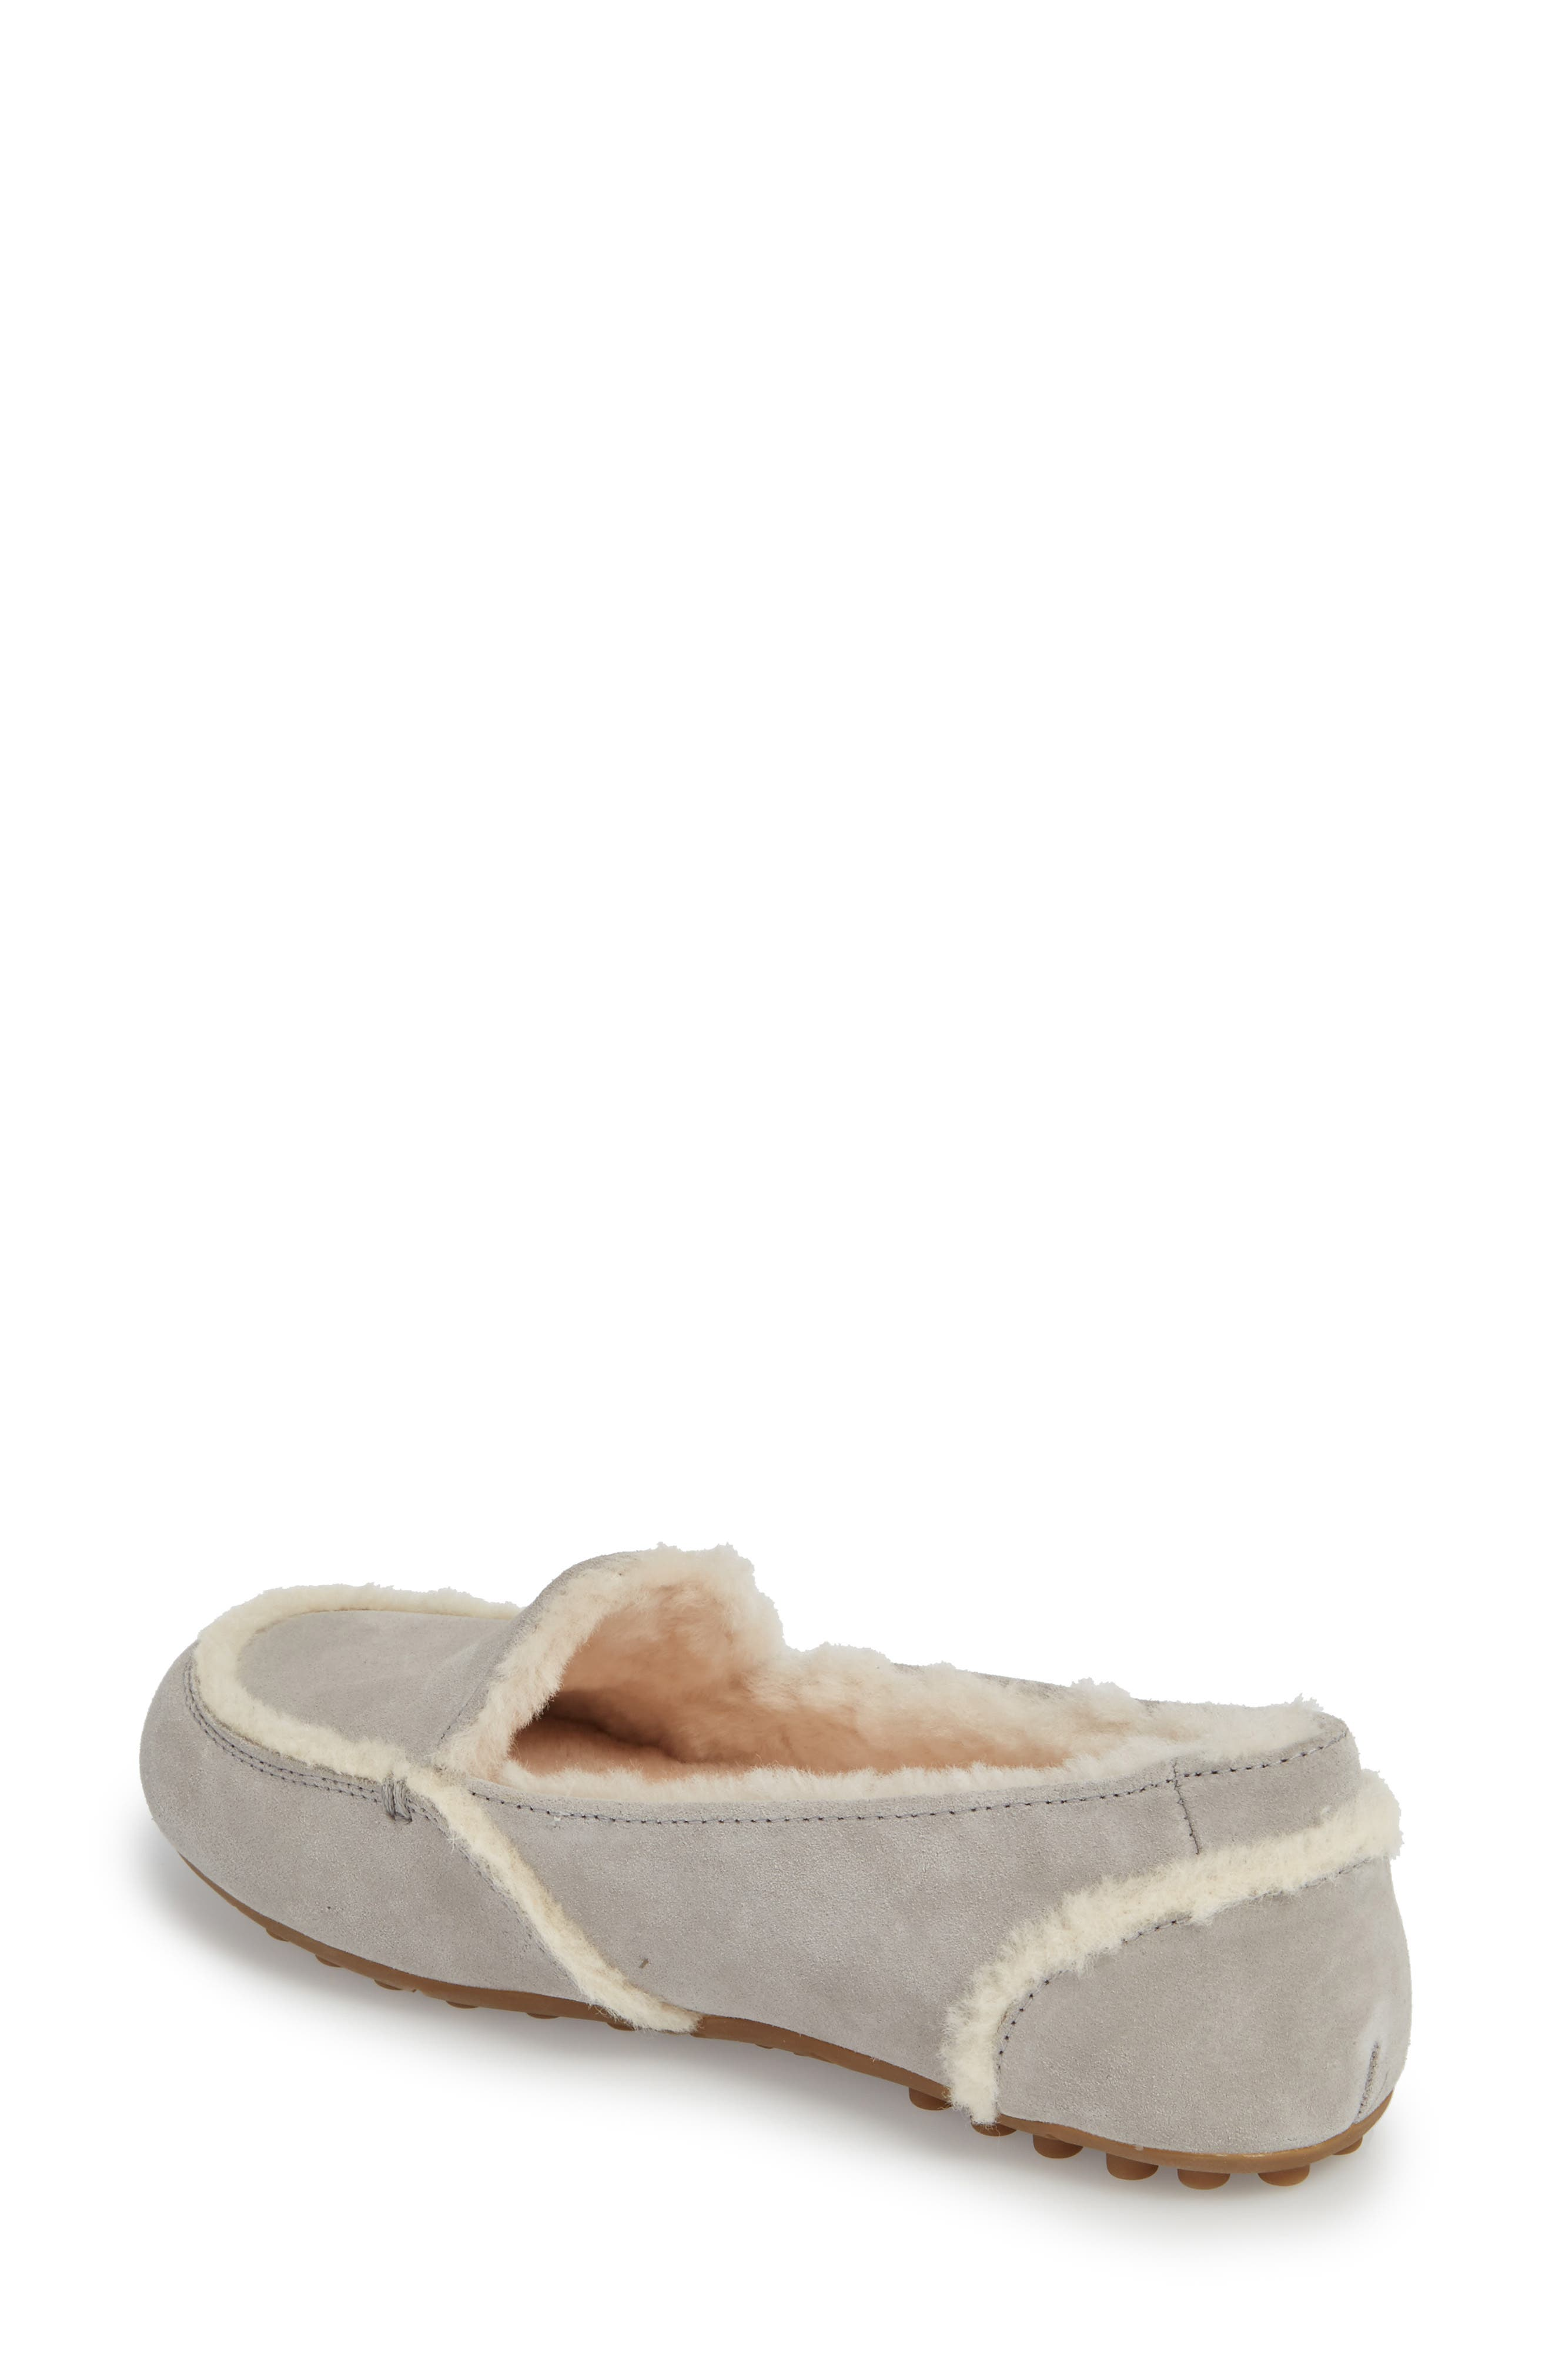 Hailey Slipper,                             Alternate thumbnail 2, color,                             GREY SUEDE